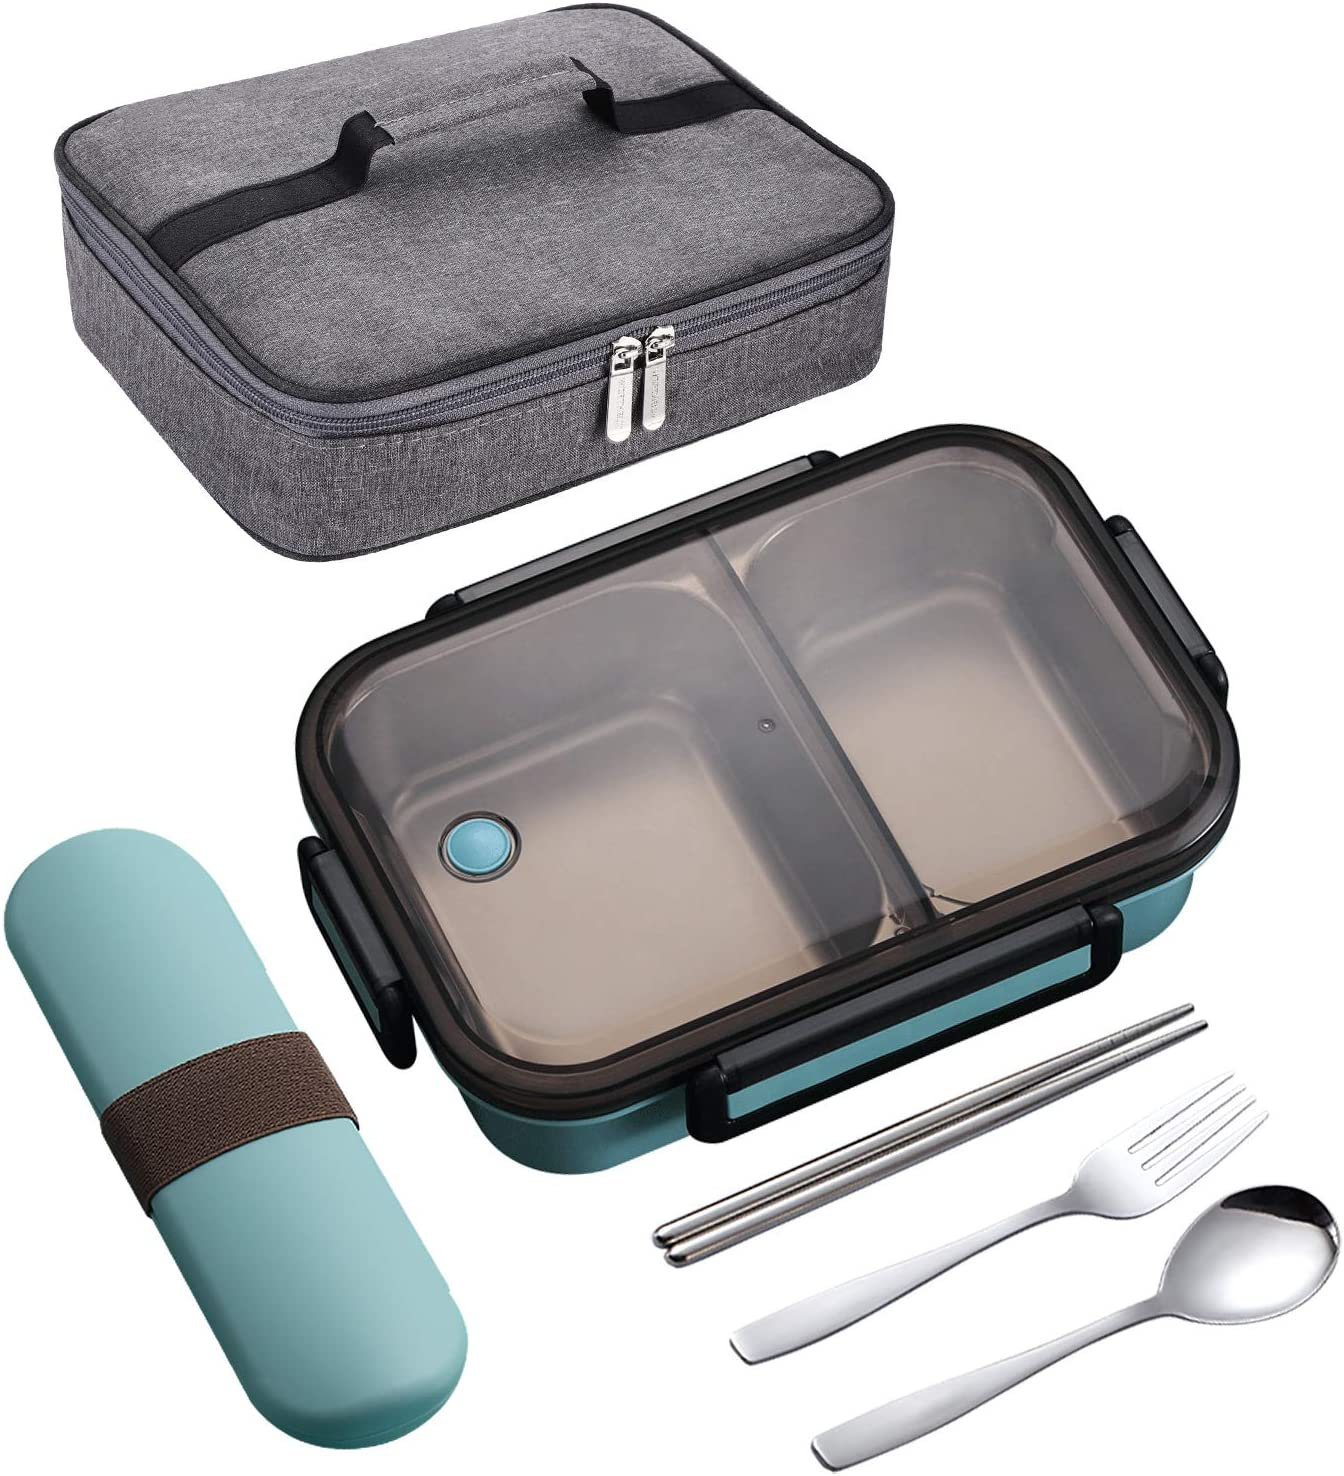 YBOBK HOME Leak Proof Bento Box, 2 Compartments Stainless Steel Lunch Box with Insulated Lunch Bag and Portable Utensil Set, Portion Control Lunch Container, On-the-Go Meal Fruit Snack Packing (Blue)